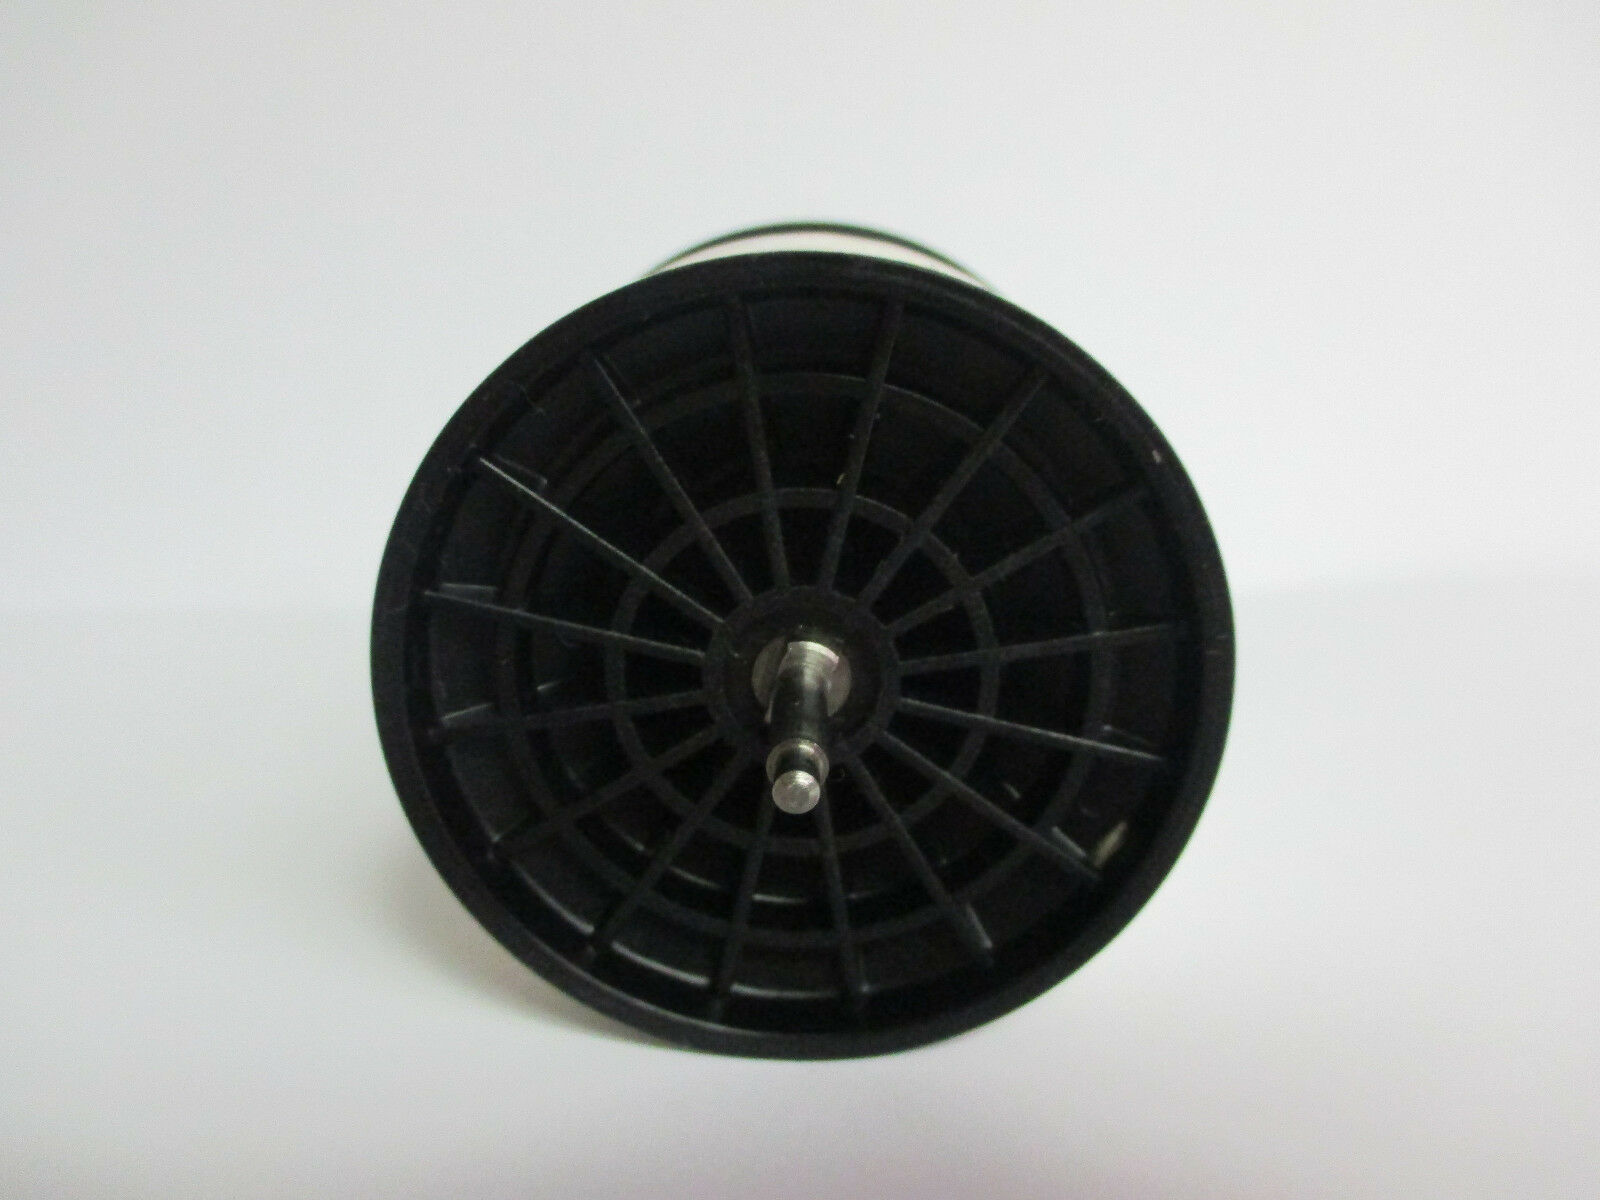 USED NEWELL BIG BIG NEWELL GAME REEL PART - S 440 5 - Spool Assembly 98fd78